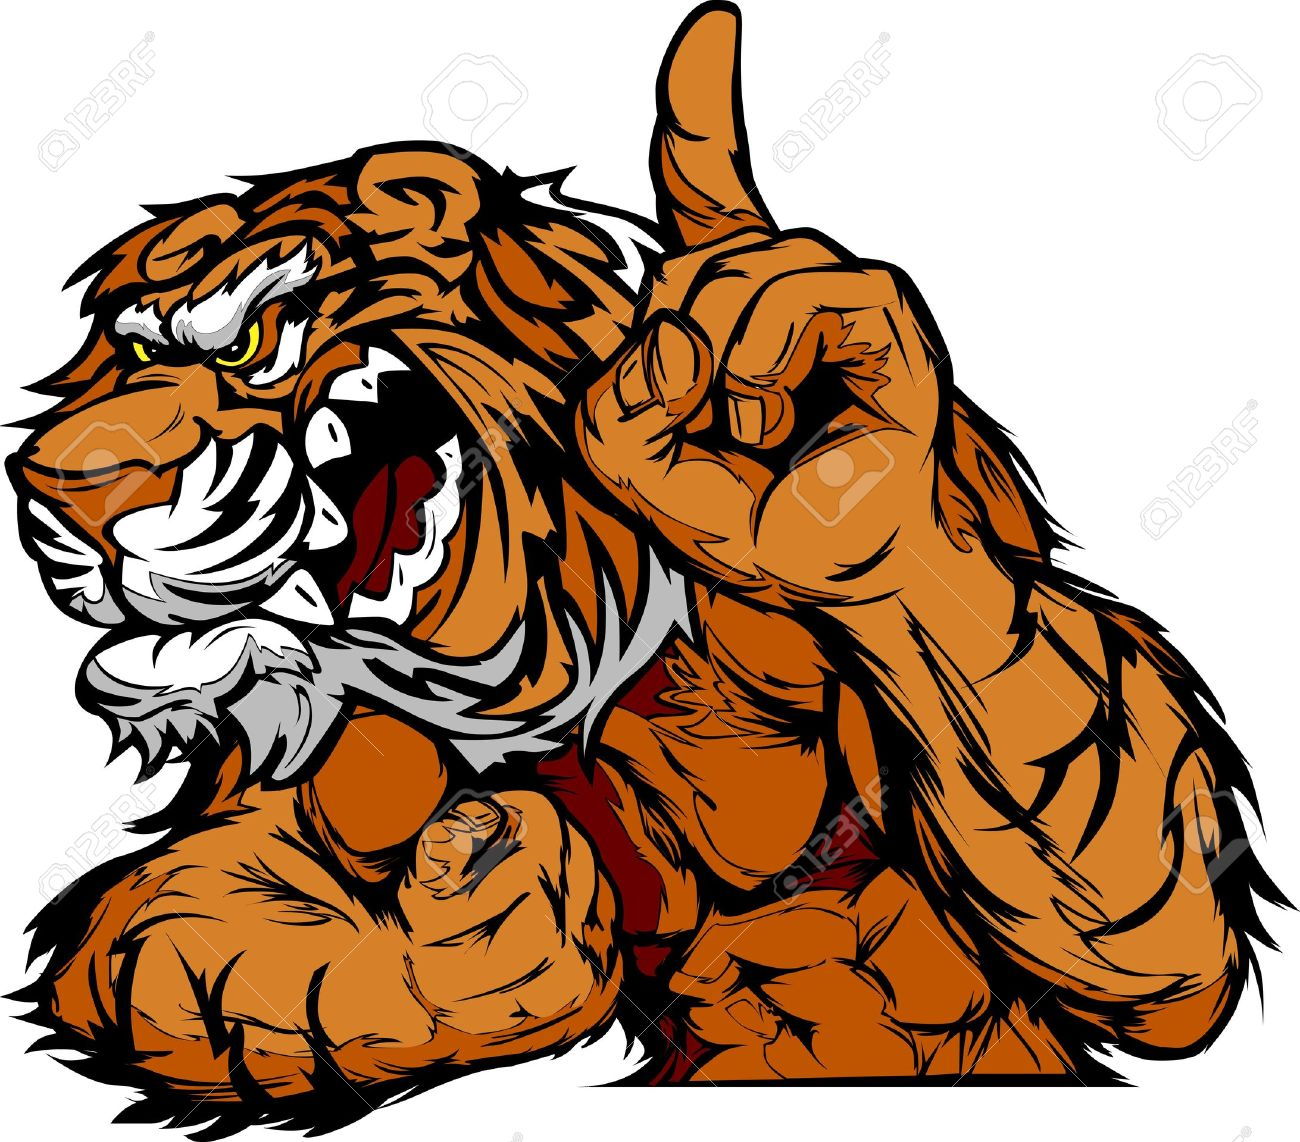 Cartoon Vector Mascot Image of a Tiger Flexing Arms and Holding up Champion  Finger